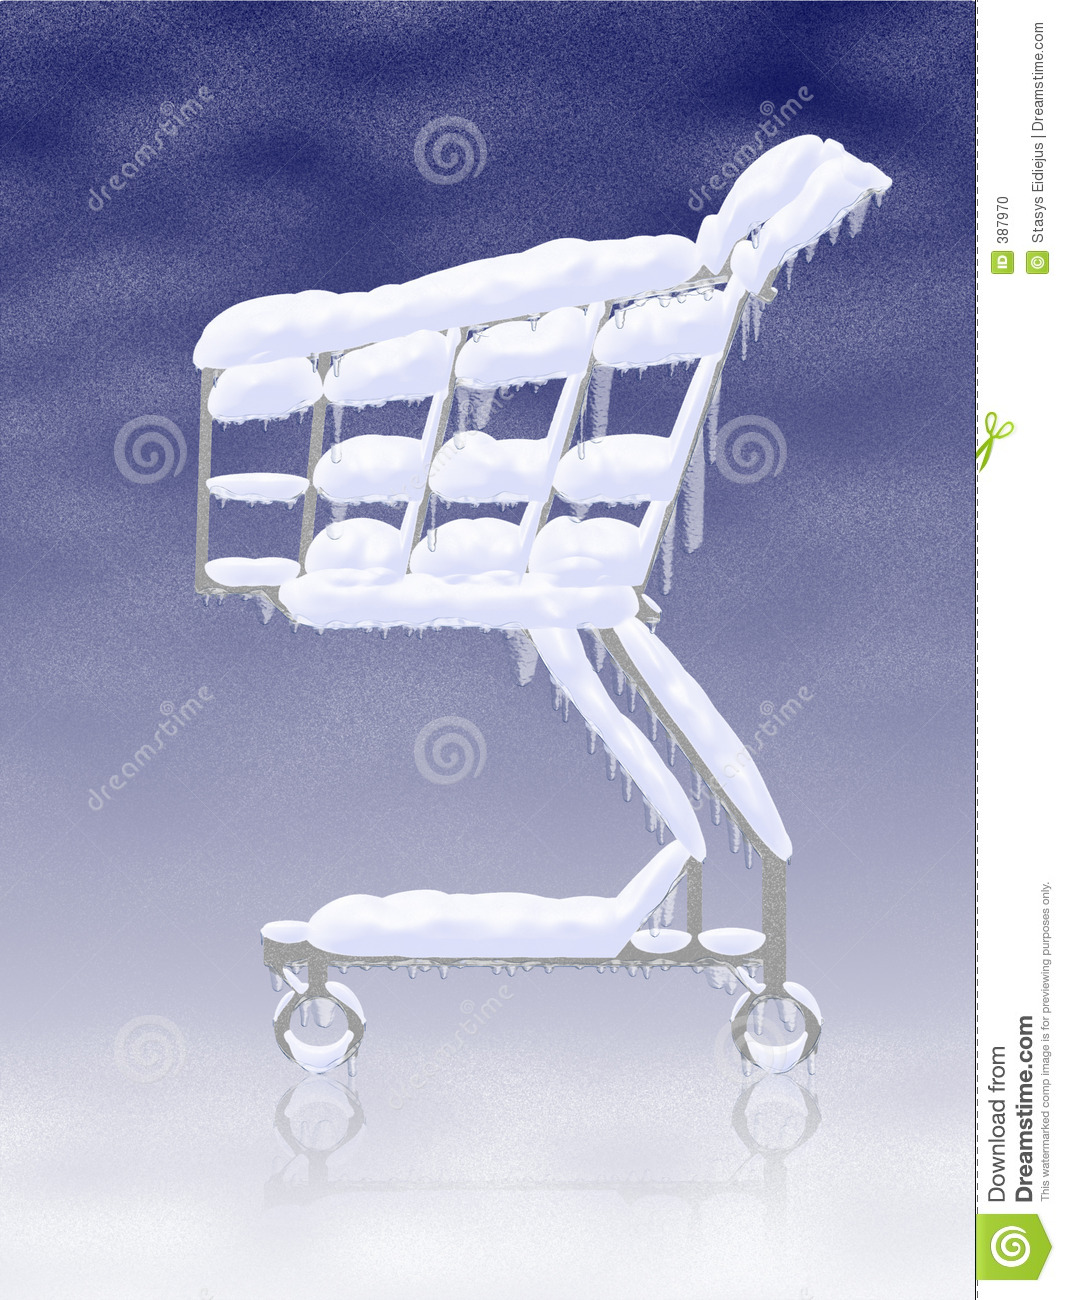 Cold buy. Snowy frozen shopping cart